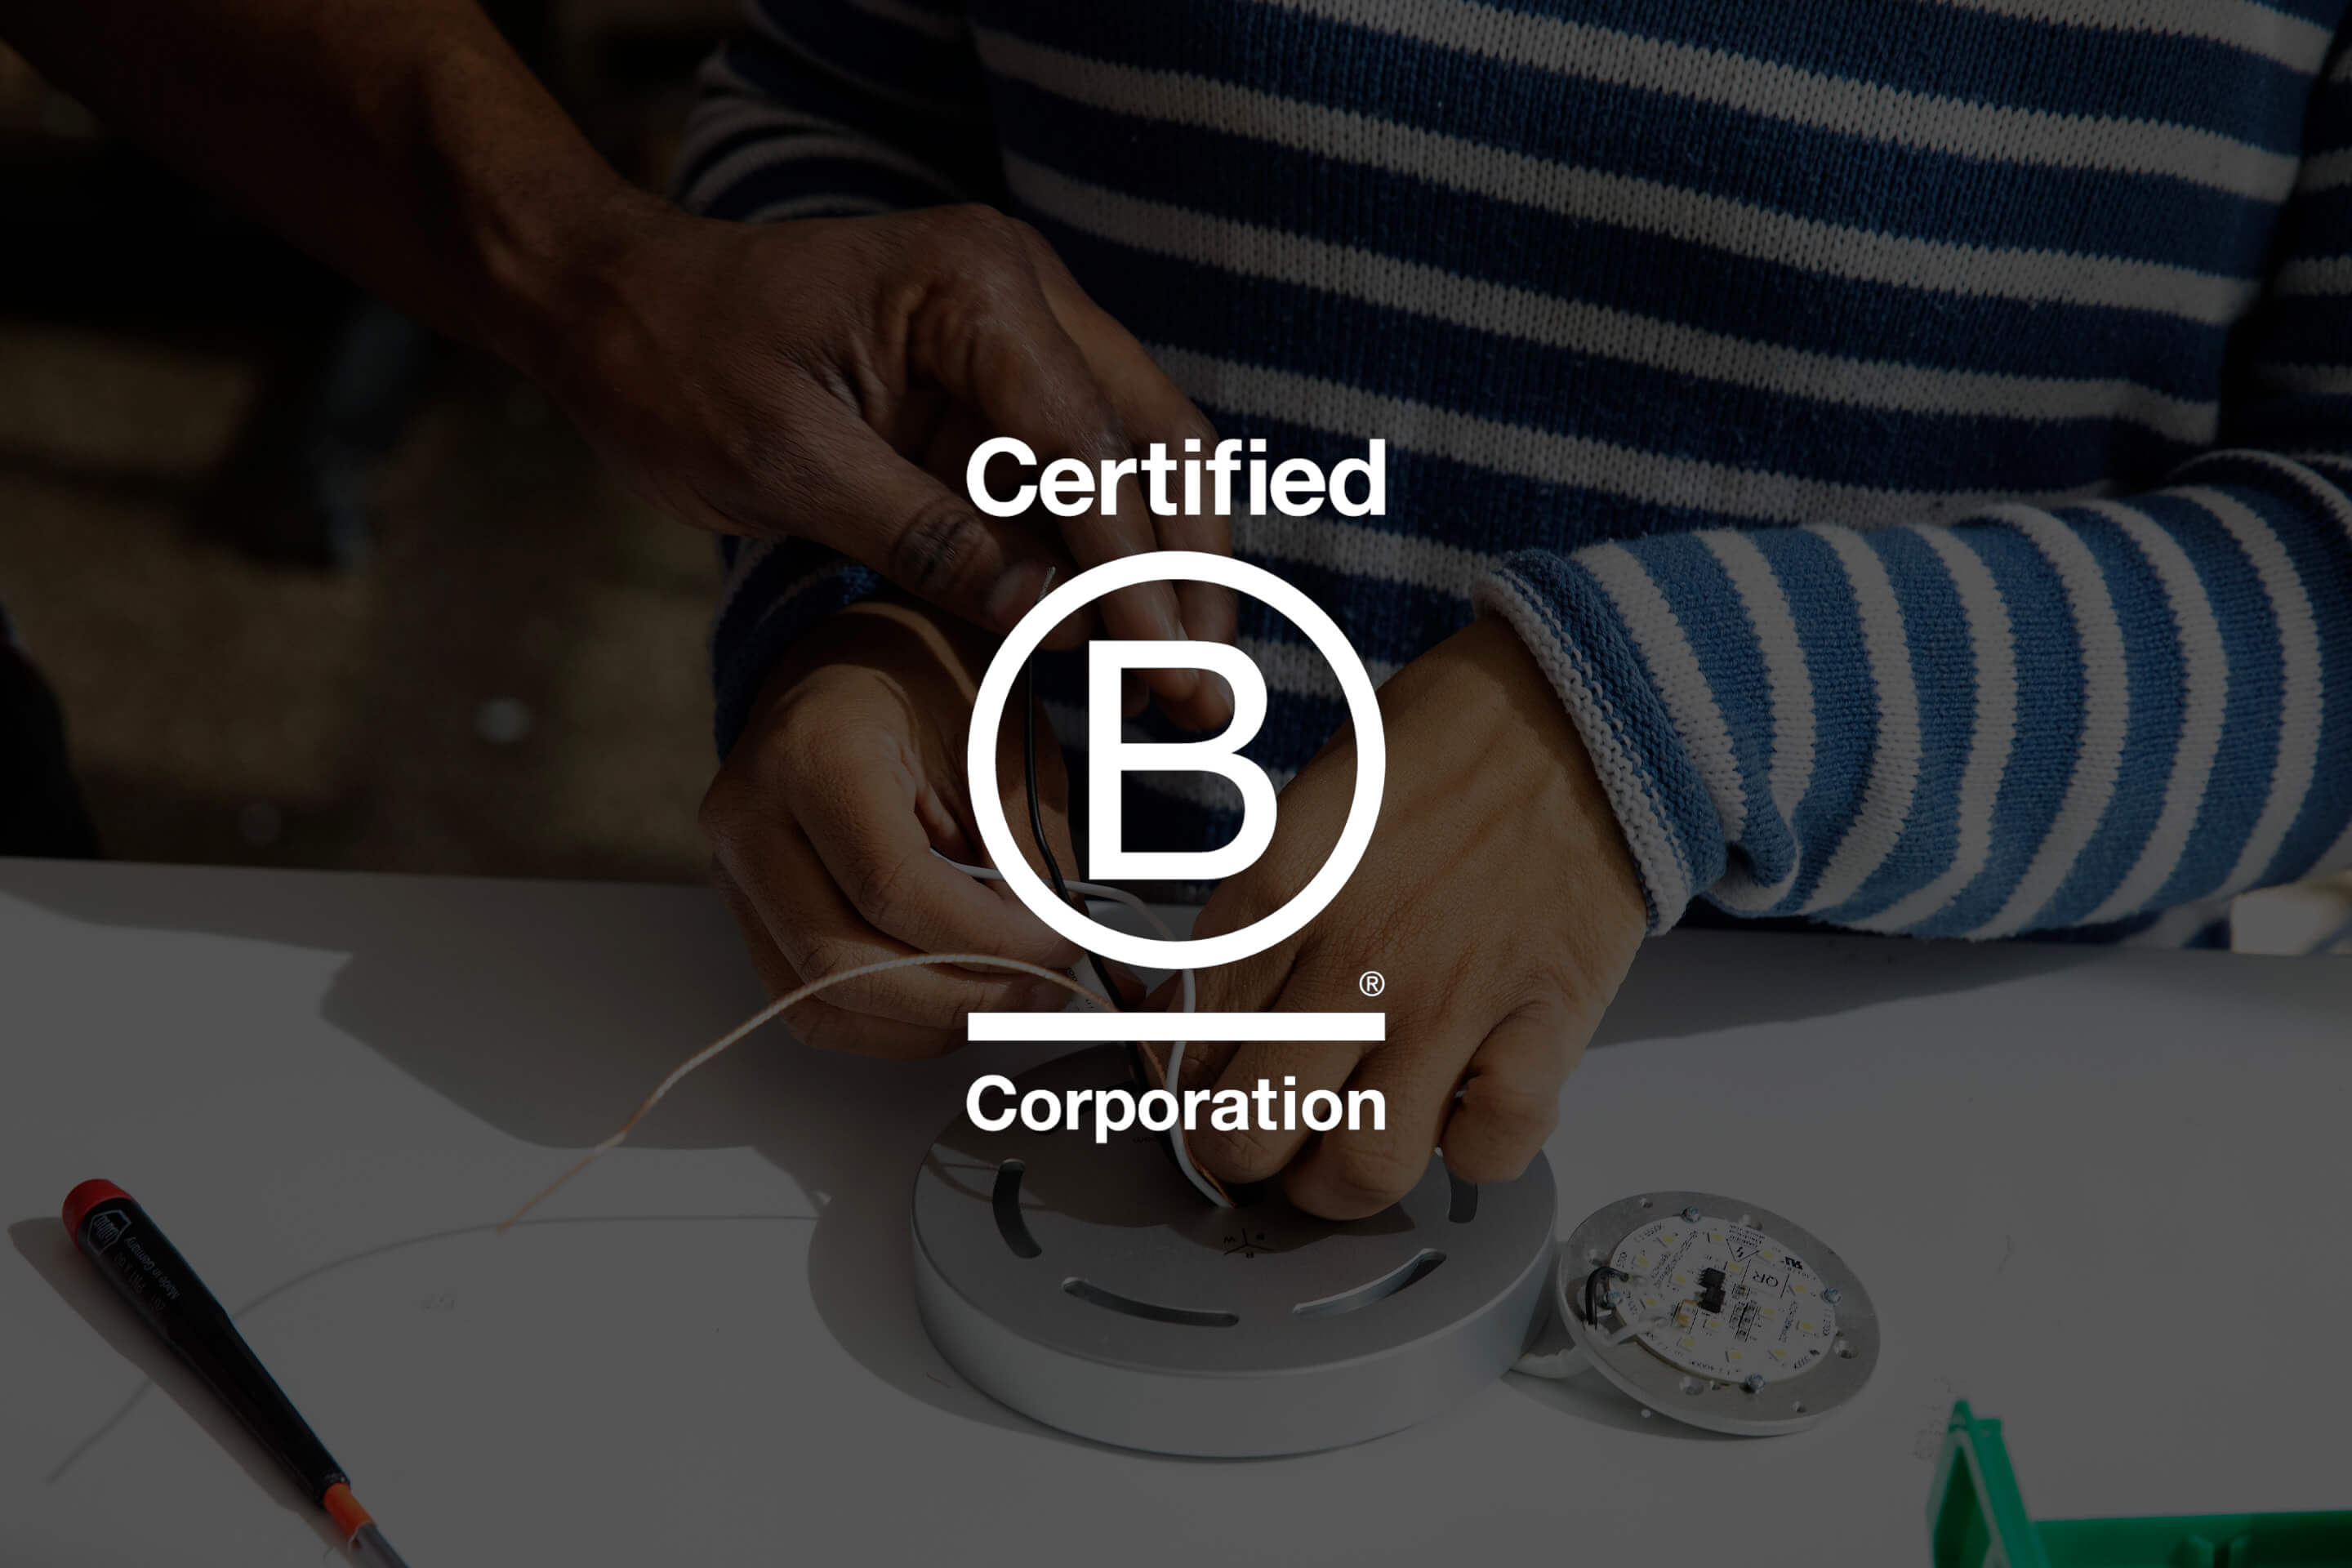 RBW is a Certified B Corporation